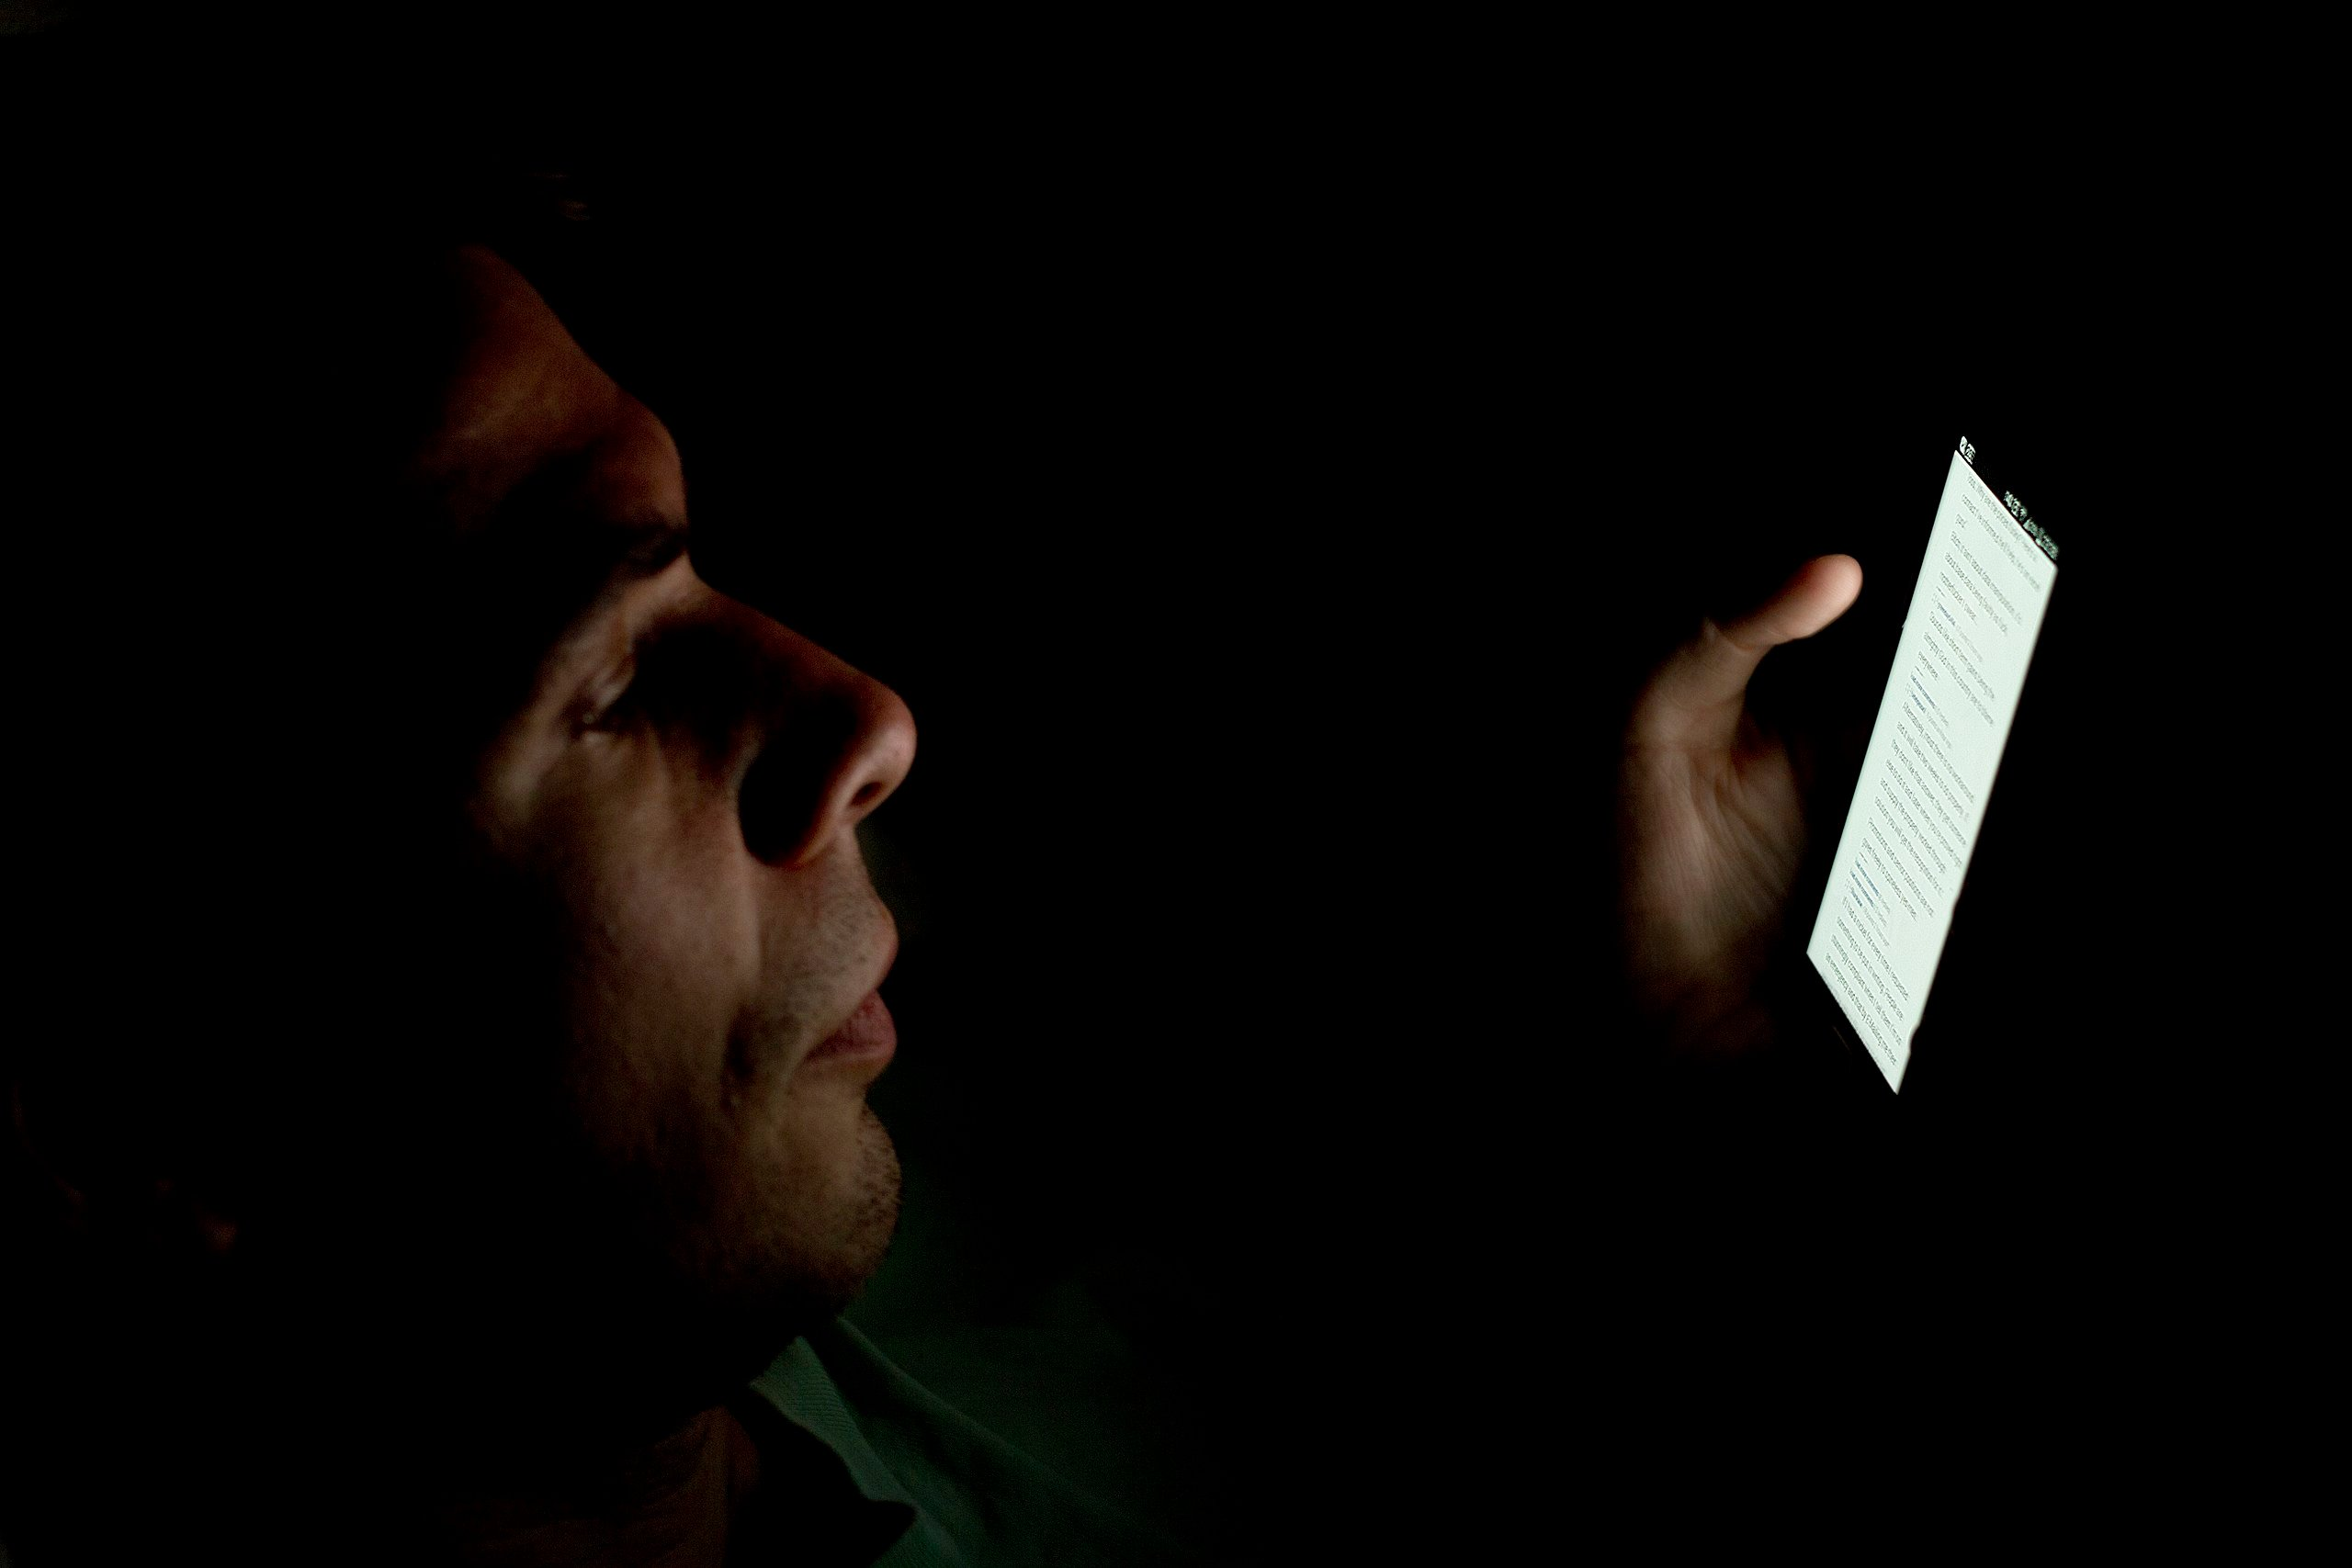 Blue Light Emitted From Digital Devices May Accelerate Blindness